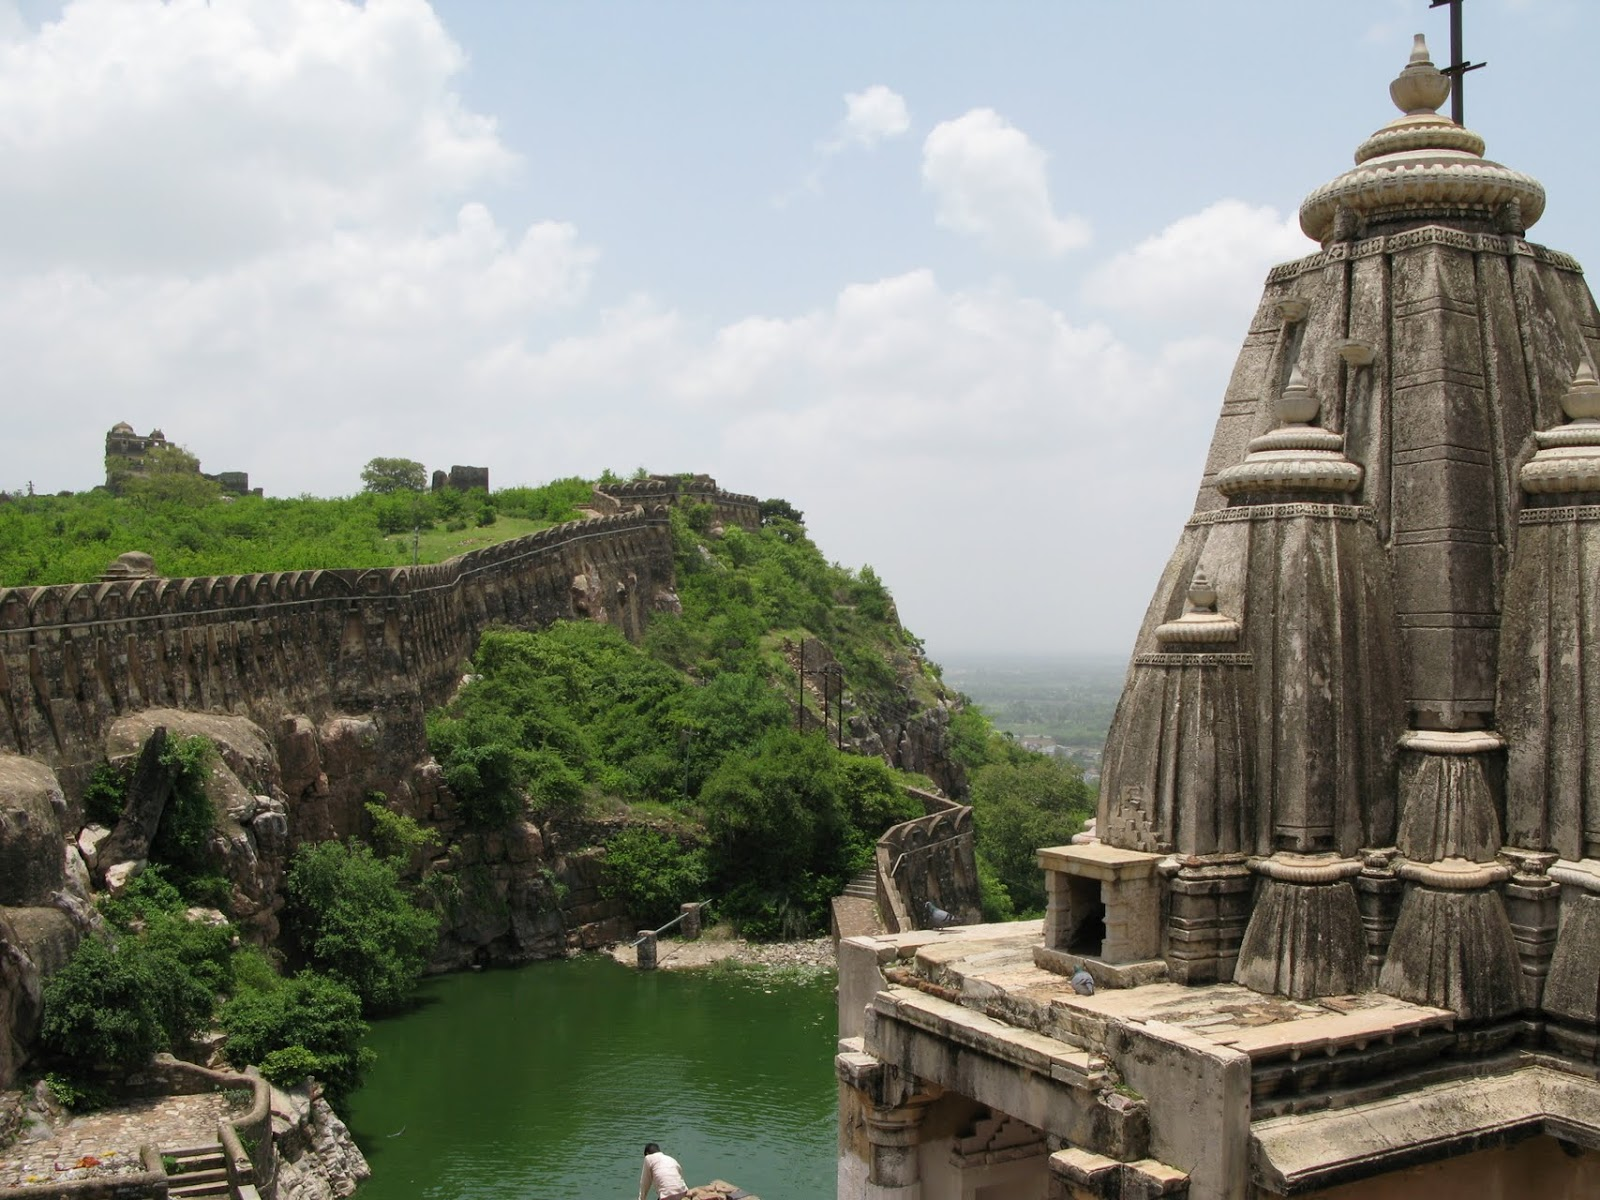 Chittorgarh India  City new picture : Chittorgarh Fort | Popular & Historical Place Of India | World